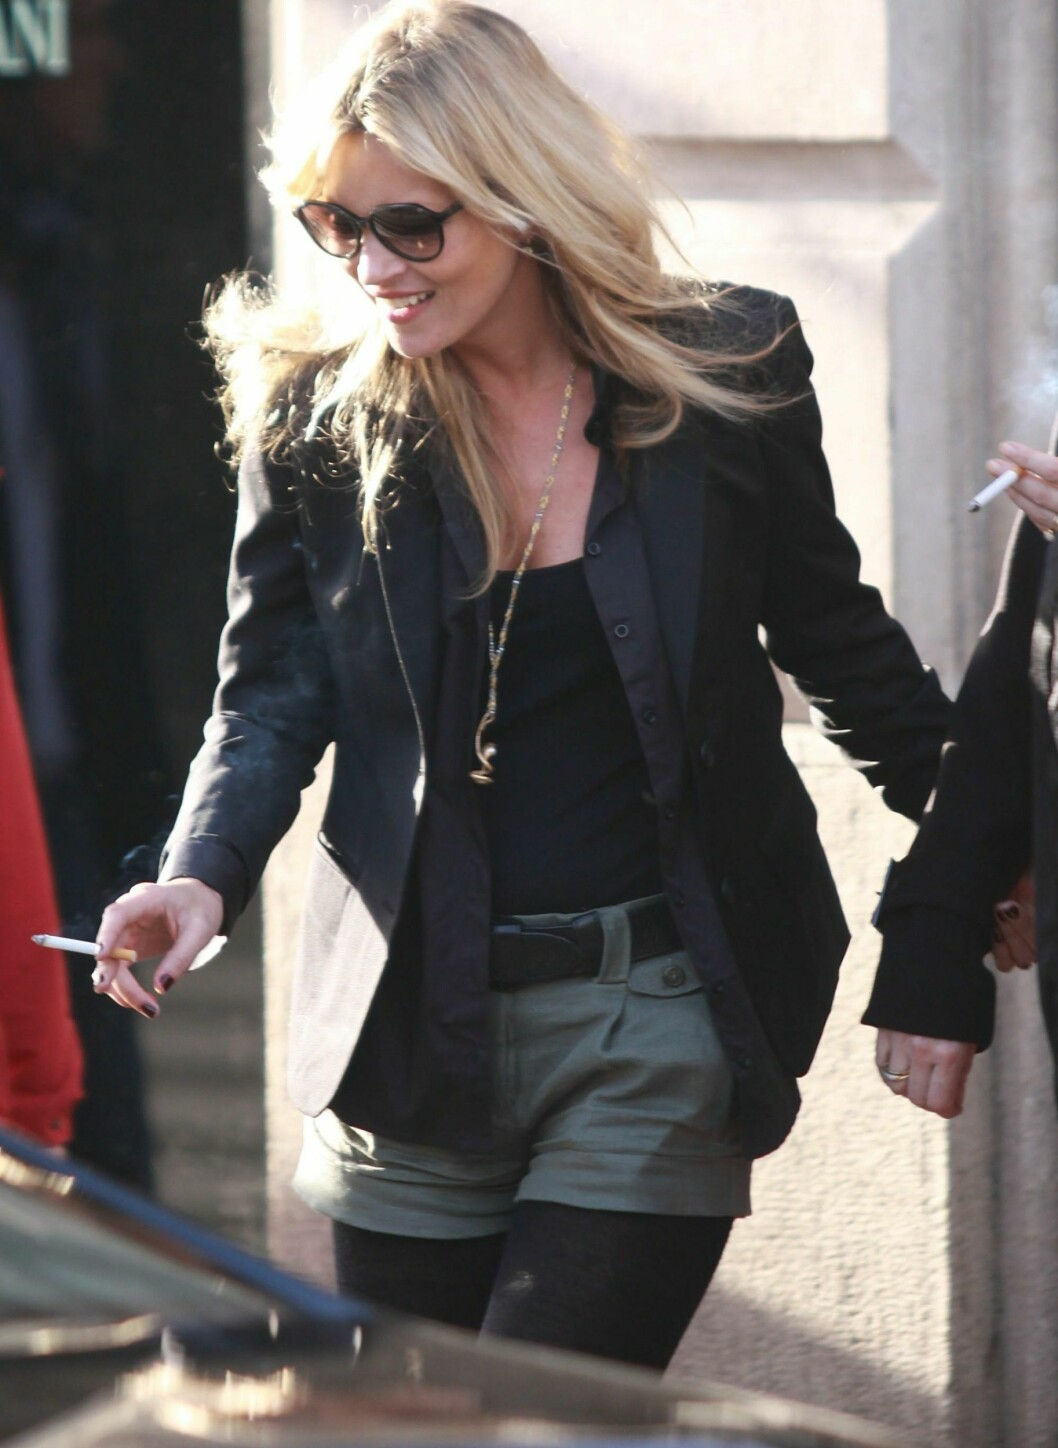 PARIS, FRANCE - JANUARY 15:  Kate Moss sighted  in Saint Germain des Pres on January 15, 2011 in Paris, France.  (Photo by Marc Piasecki/Getty Images) By: All Over Press / Getty Images CODE: GE01X8 Foto: All Over Press